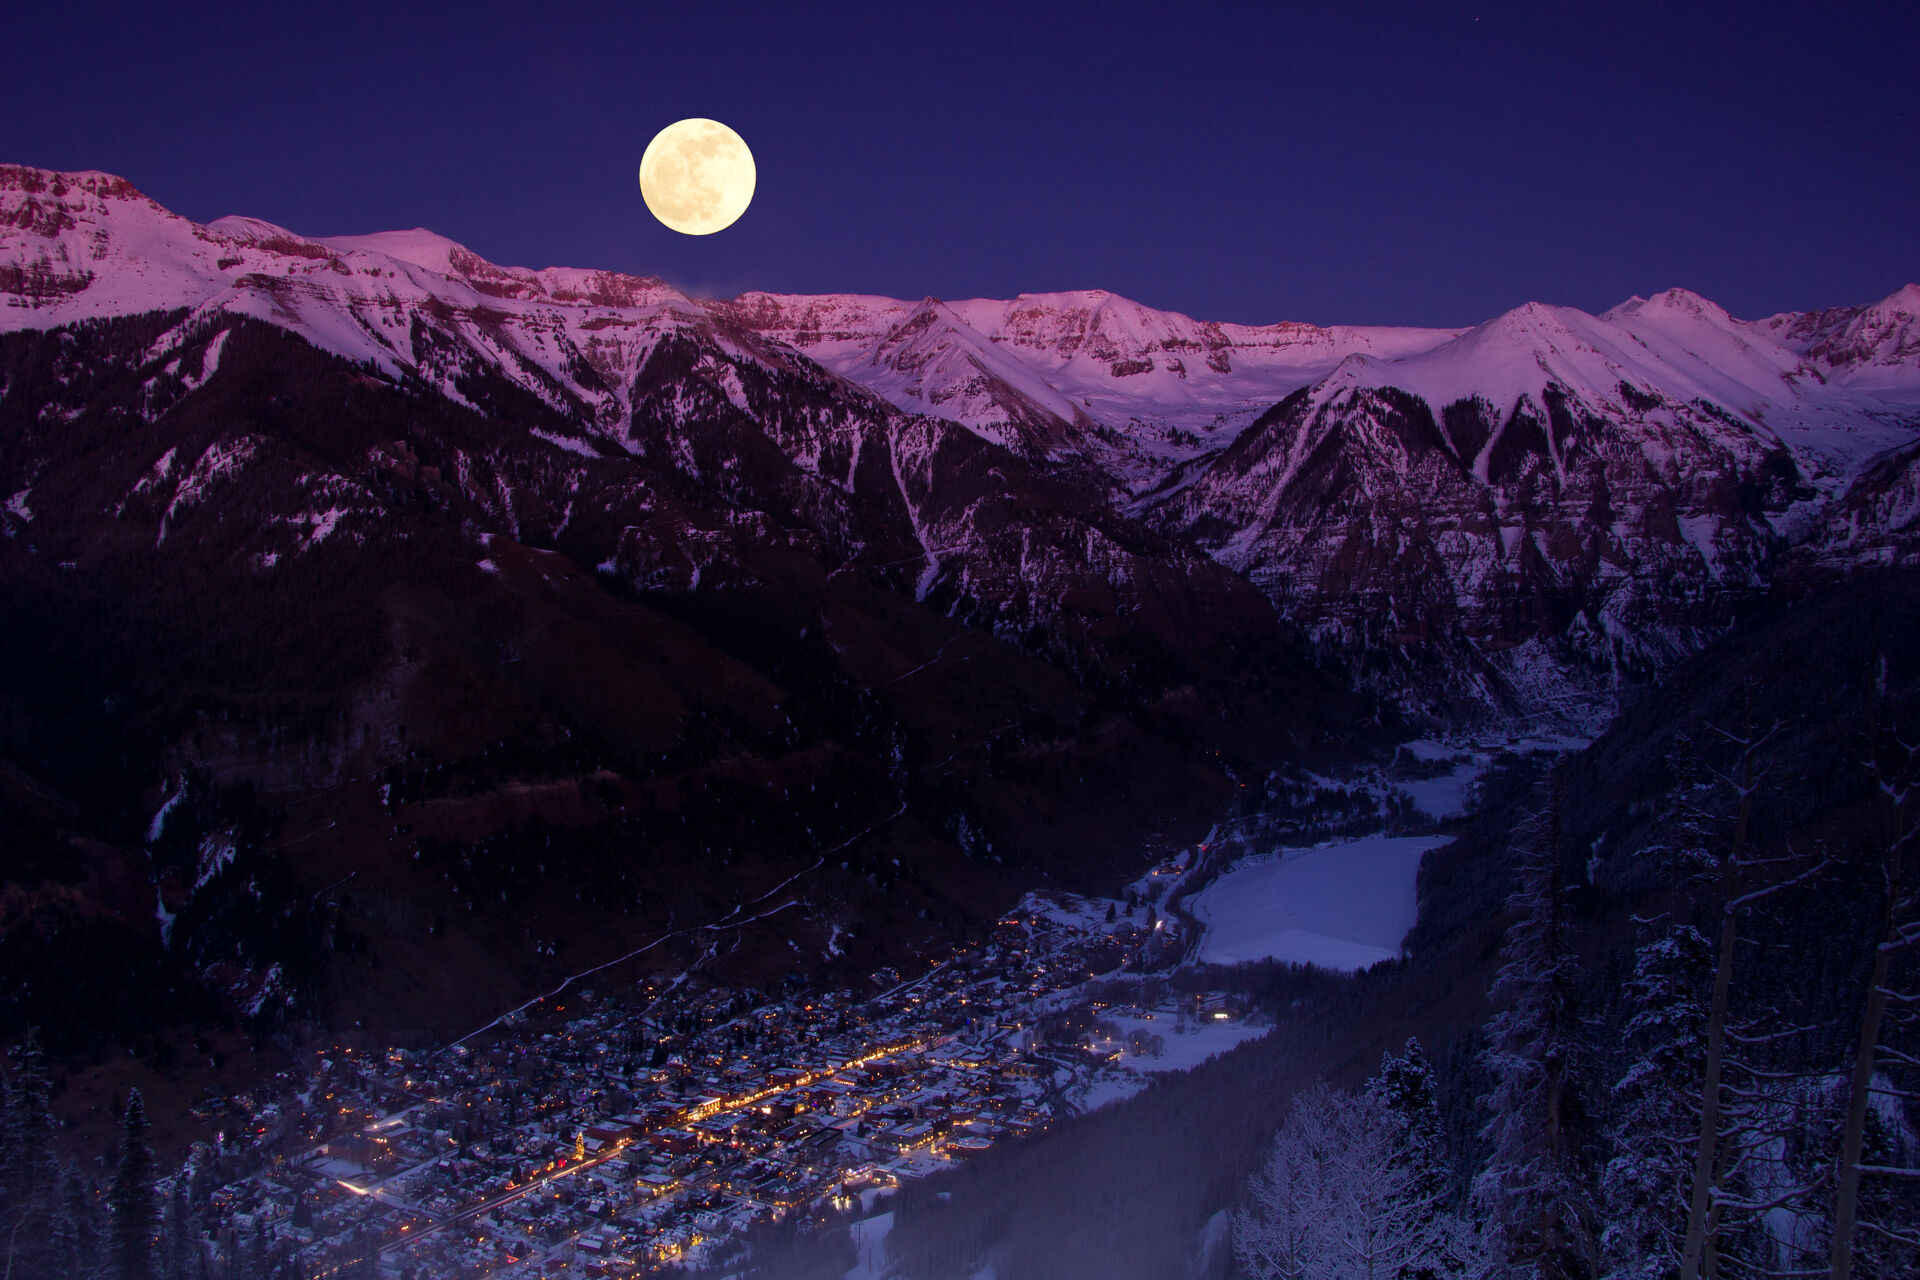 Nighttime overview of Telluride